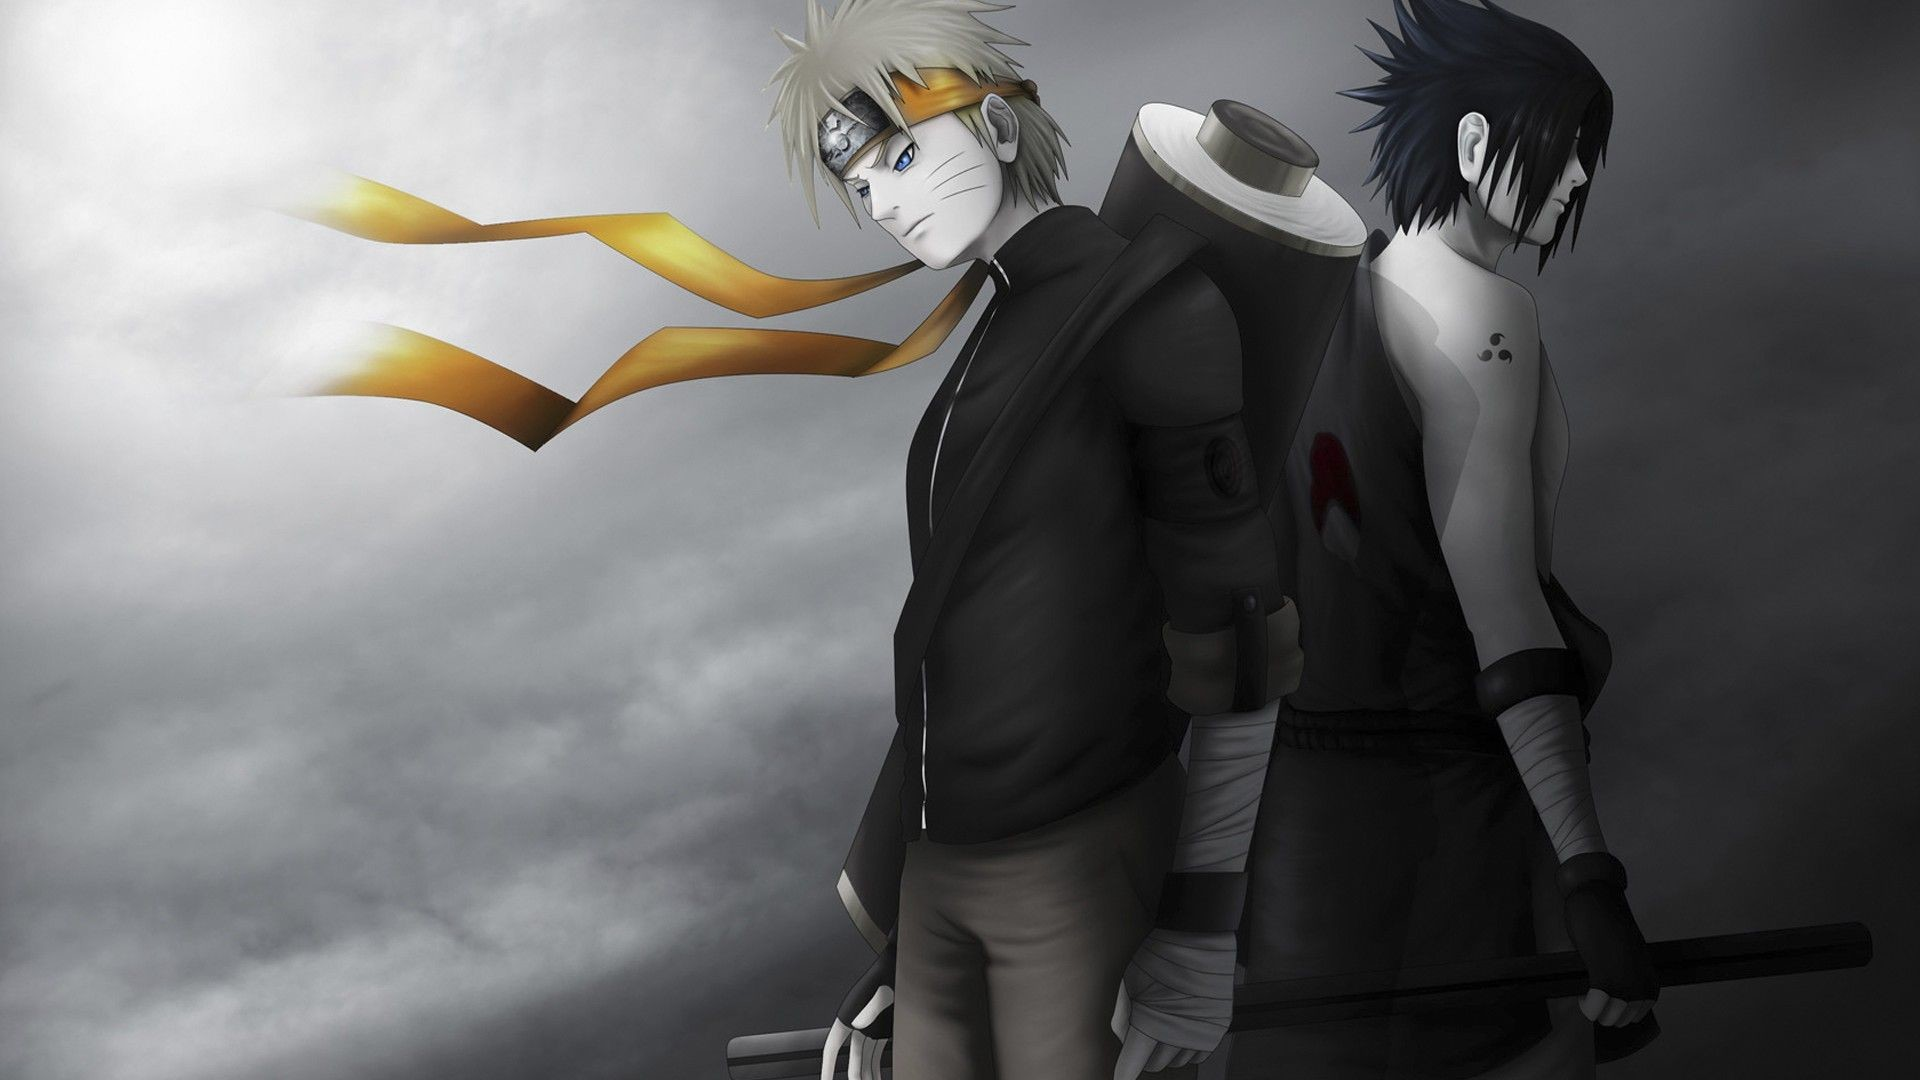 Res: 1920x1080, ... naruto-wallpaper-beautiful-black-and-white ...